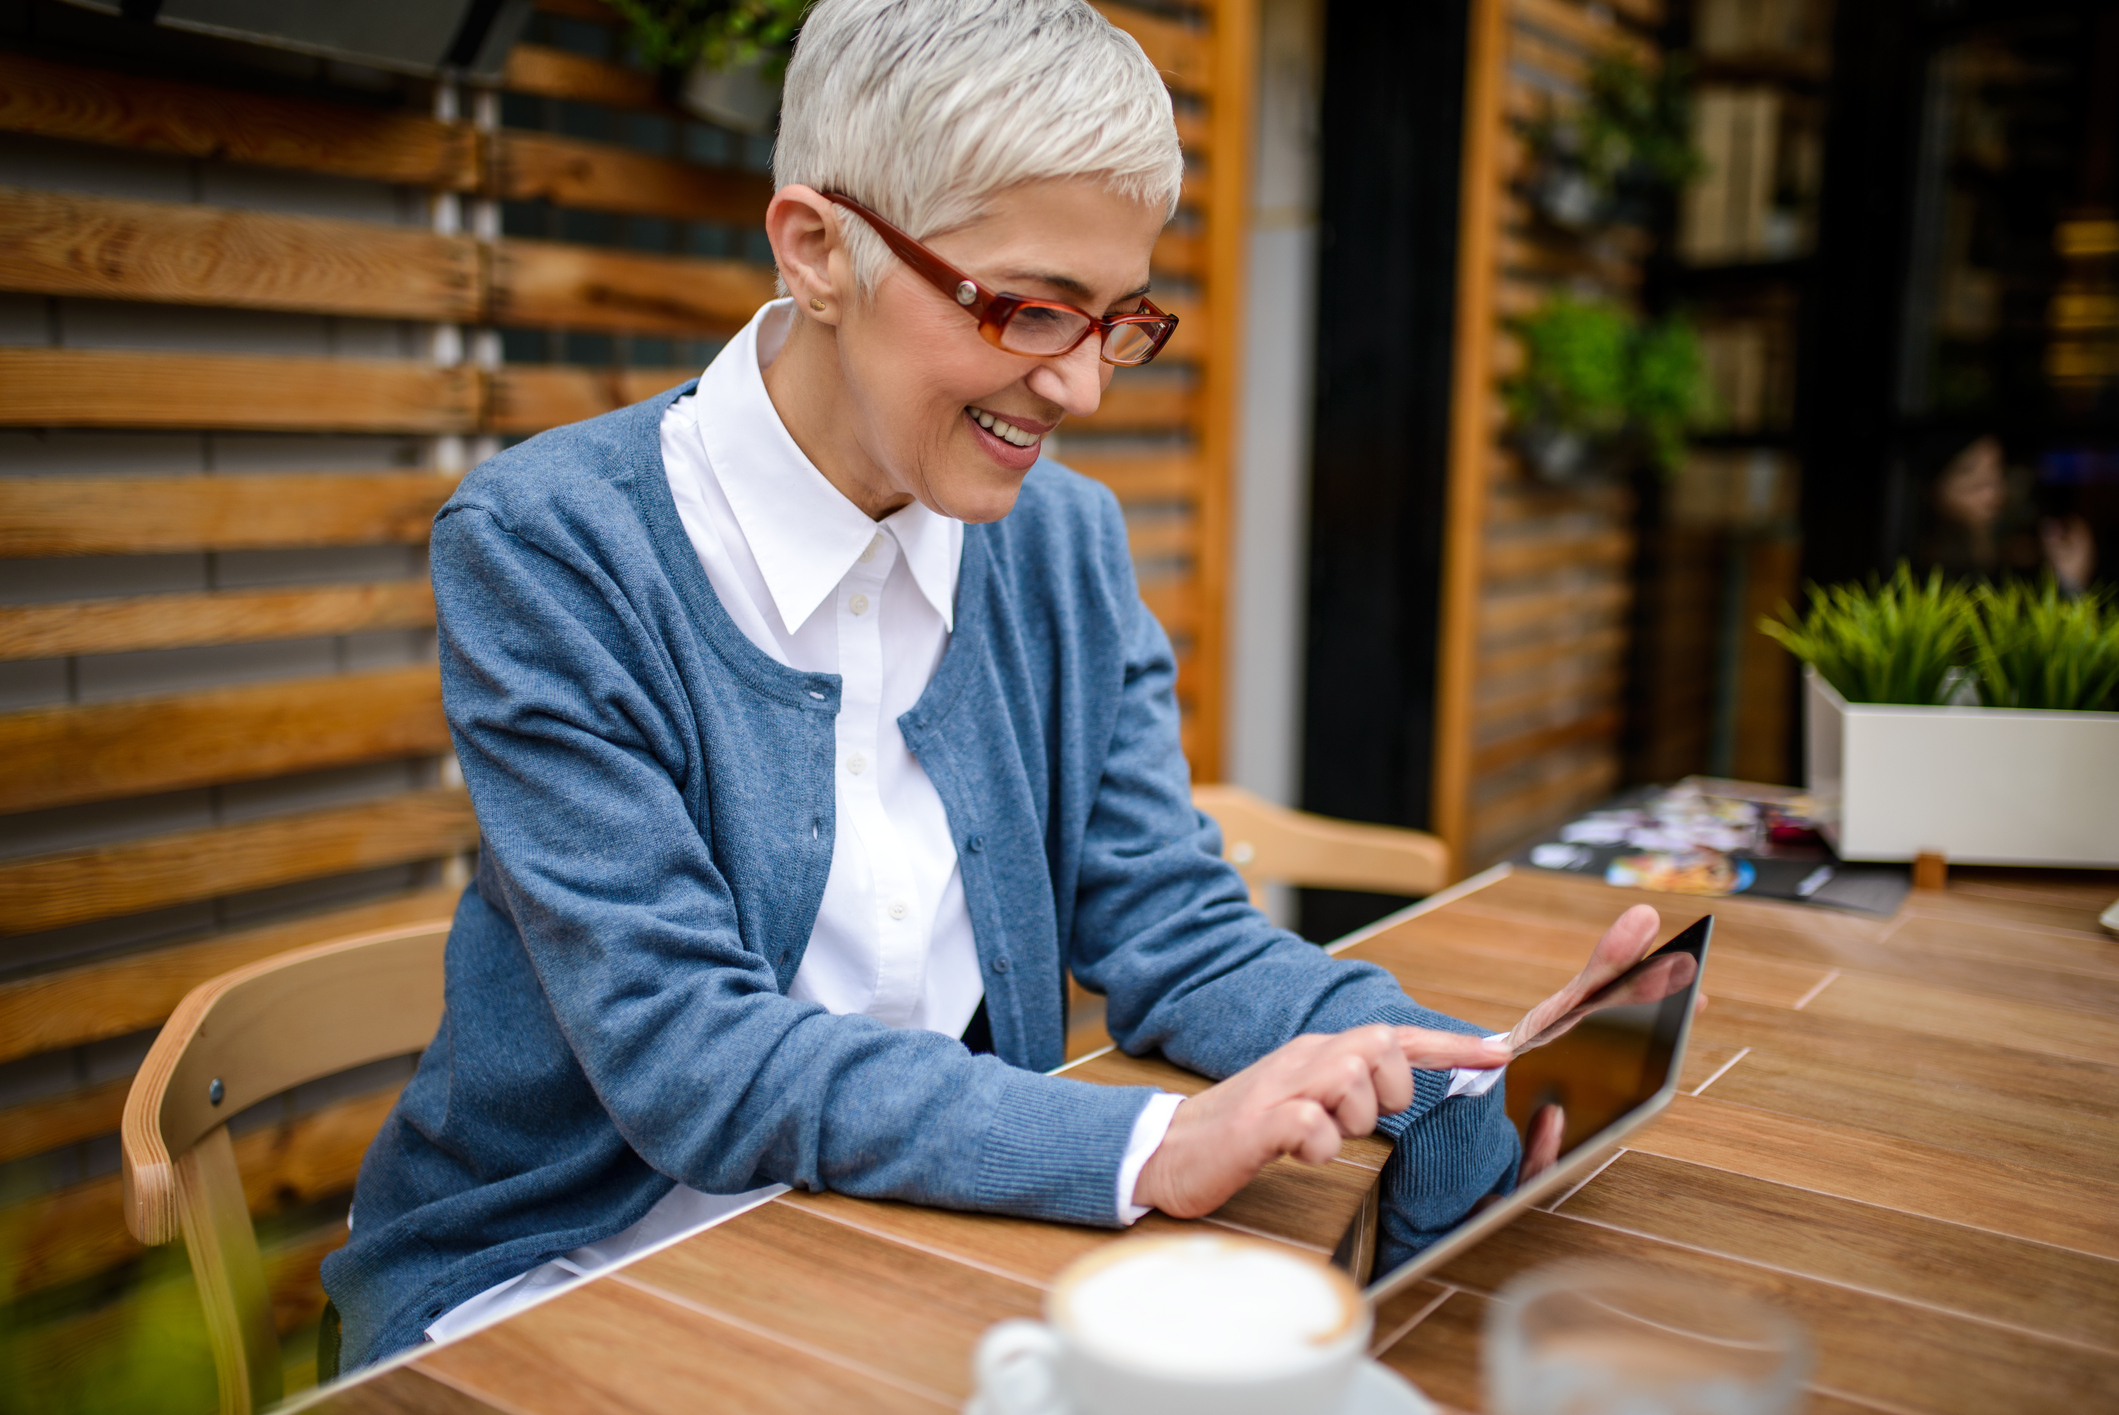 smiling mature professional woman using tablet and drinking coffee - Top 20 Remote Work States in 2018 - Virtual Vocations telecommute and remote jobs